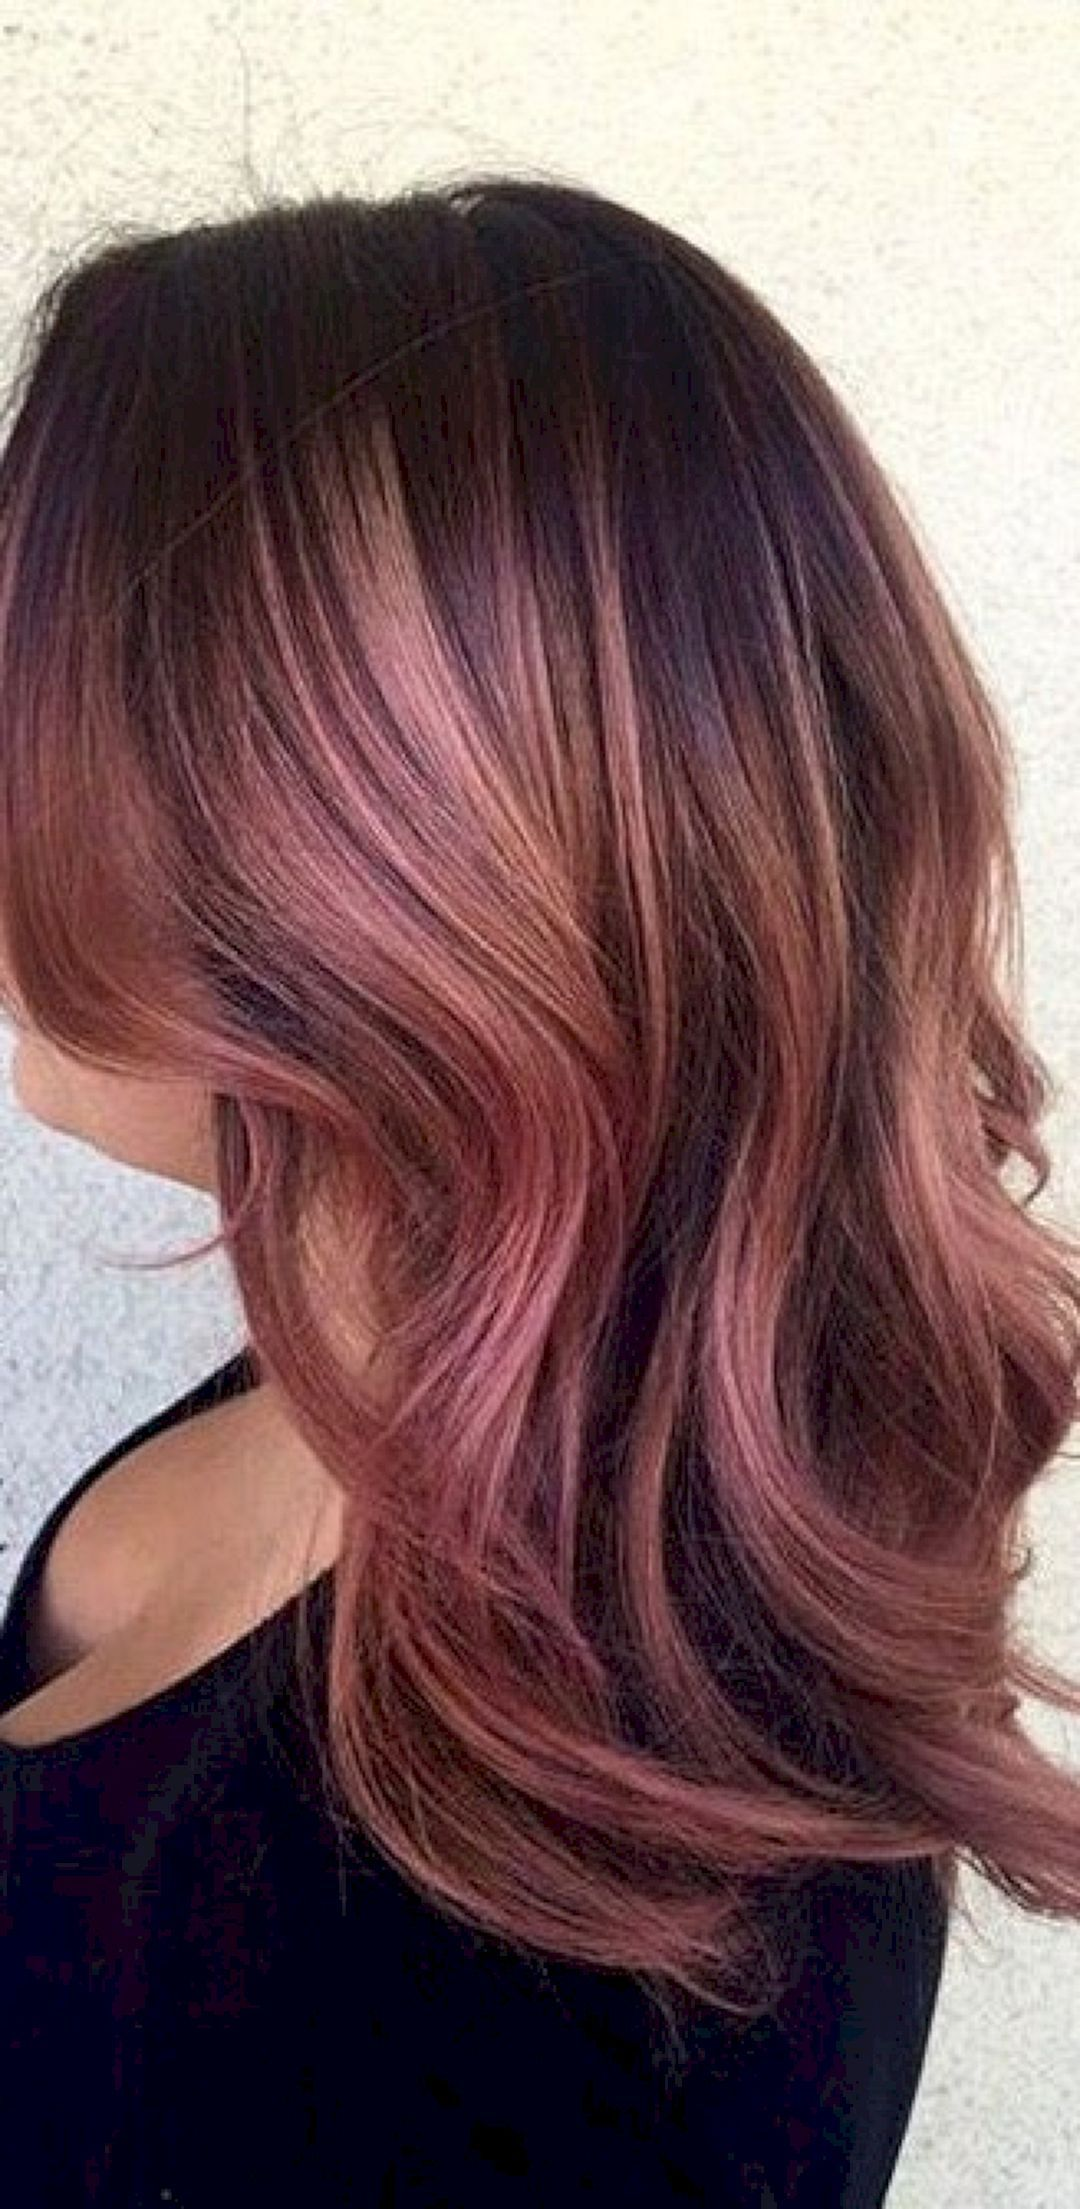 Dyed Hairstyles Brilliant 45 Best And Stunning Dyed Hair Ideas For Brunettes  Brunettes